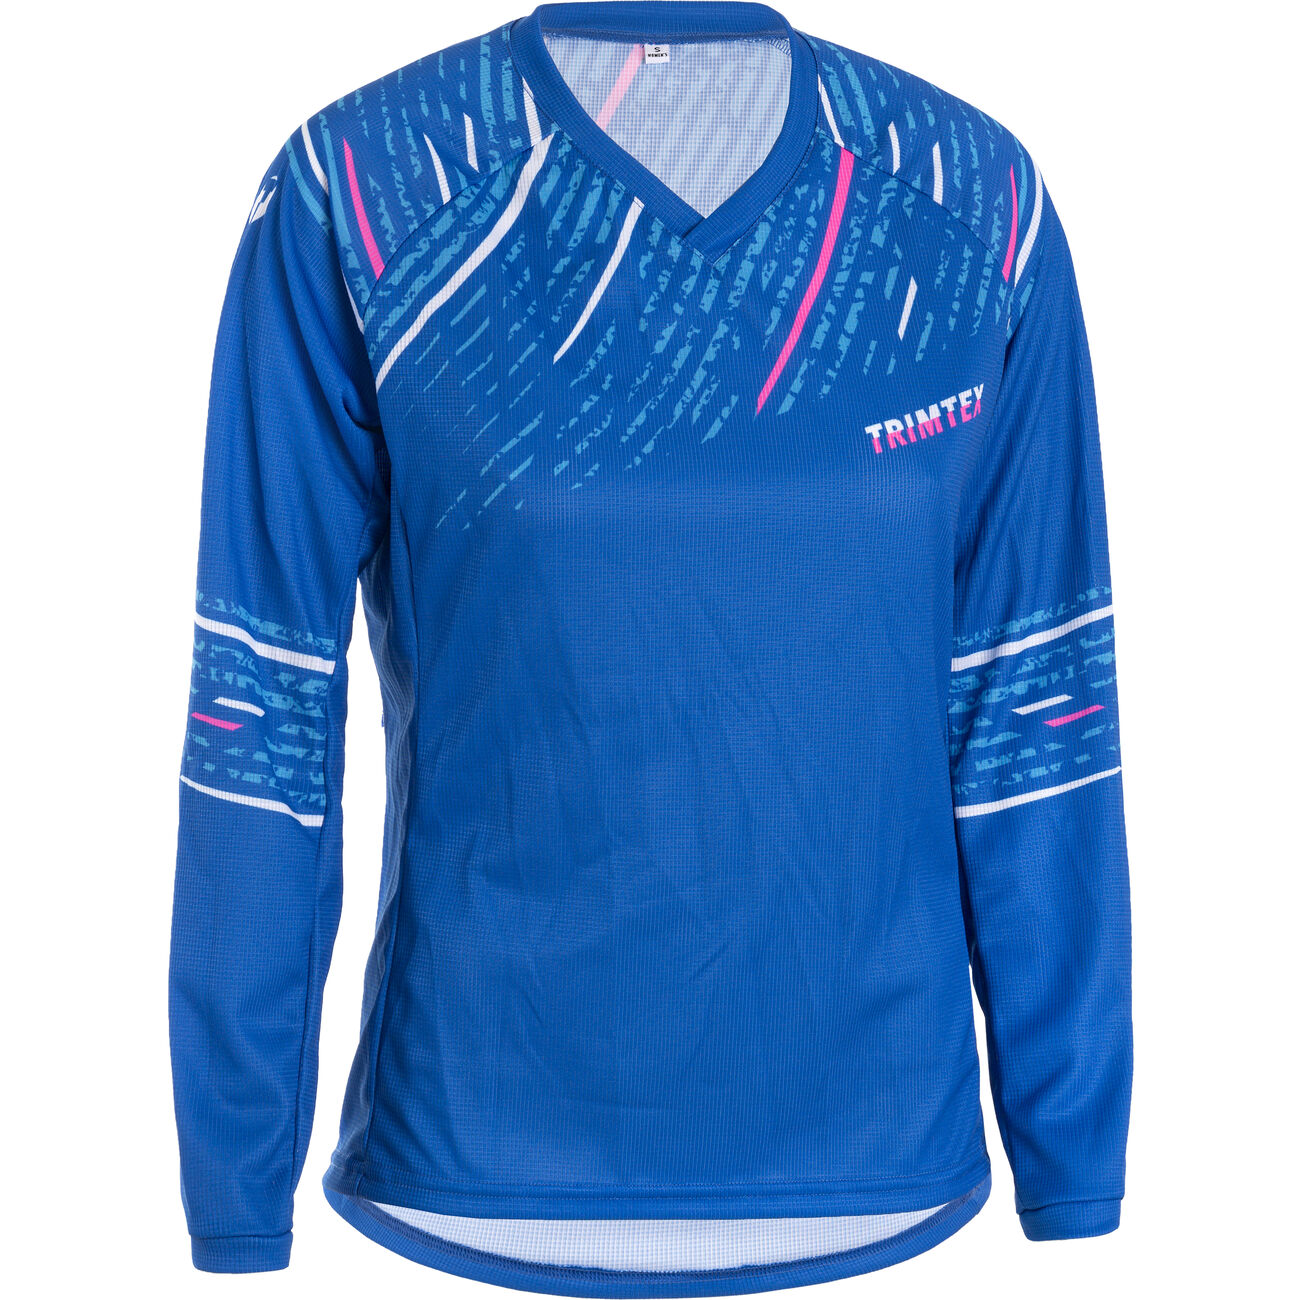 Enduro cycling jersey women's